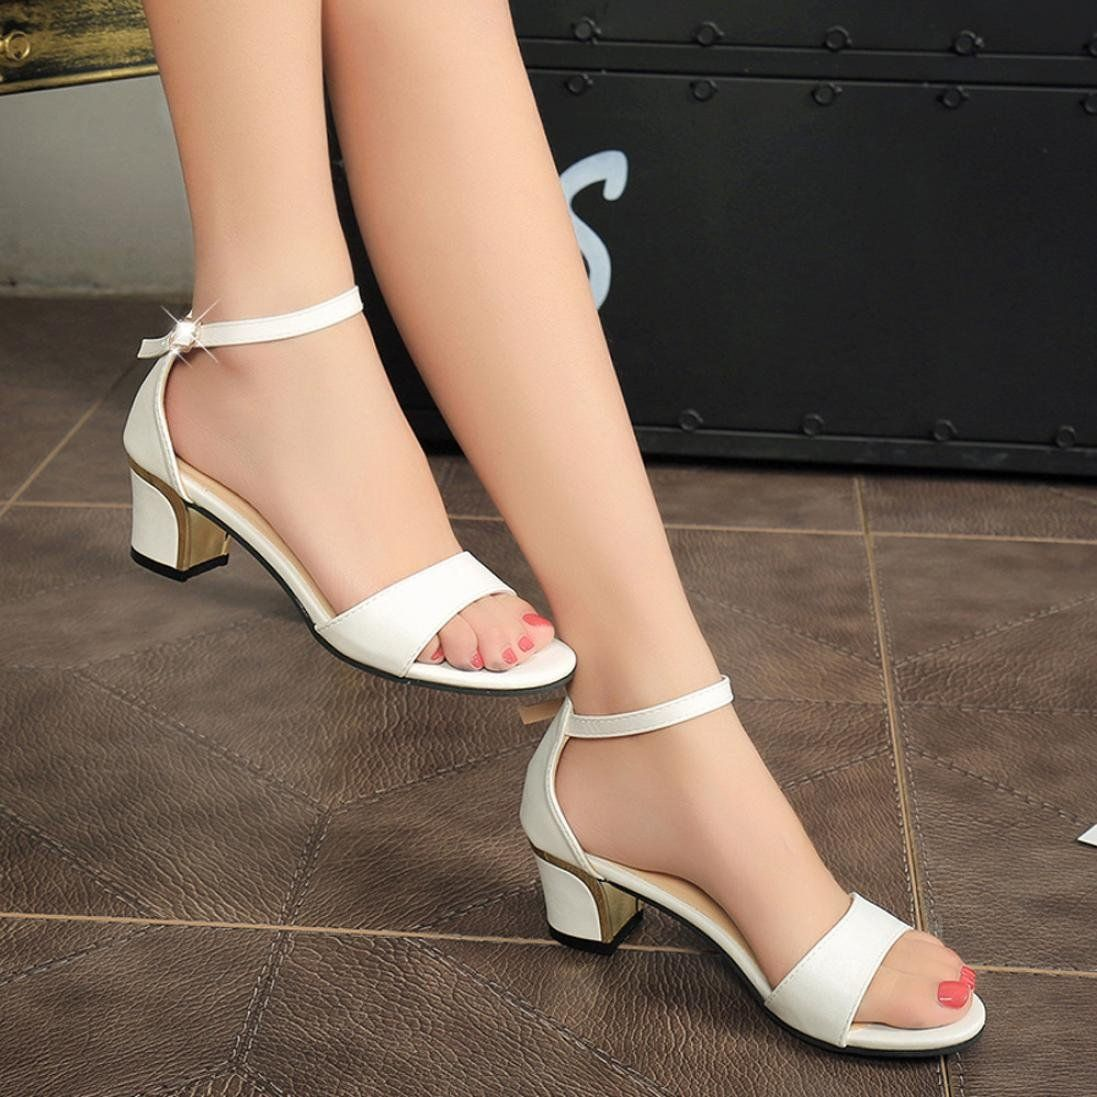 bf000ff460a Hemlock Office Lady Mid Heels Sandals Shoes Women Wedge Sandals Pointed Toe  Sandals Wedding Shoes US